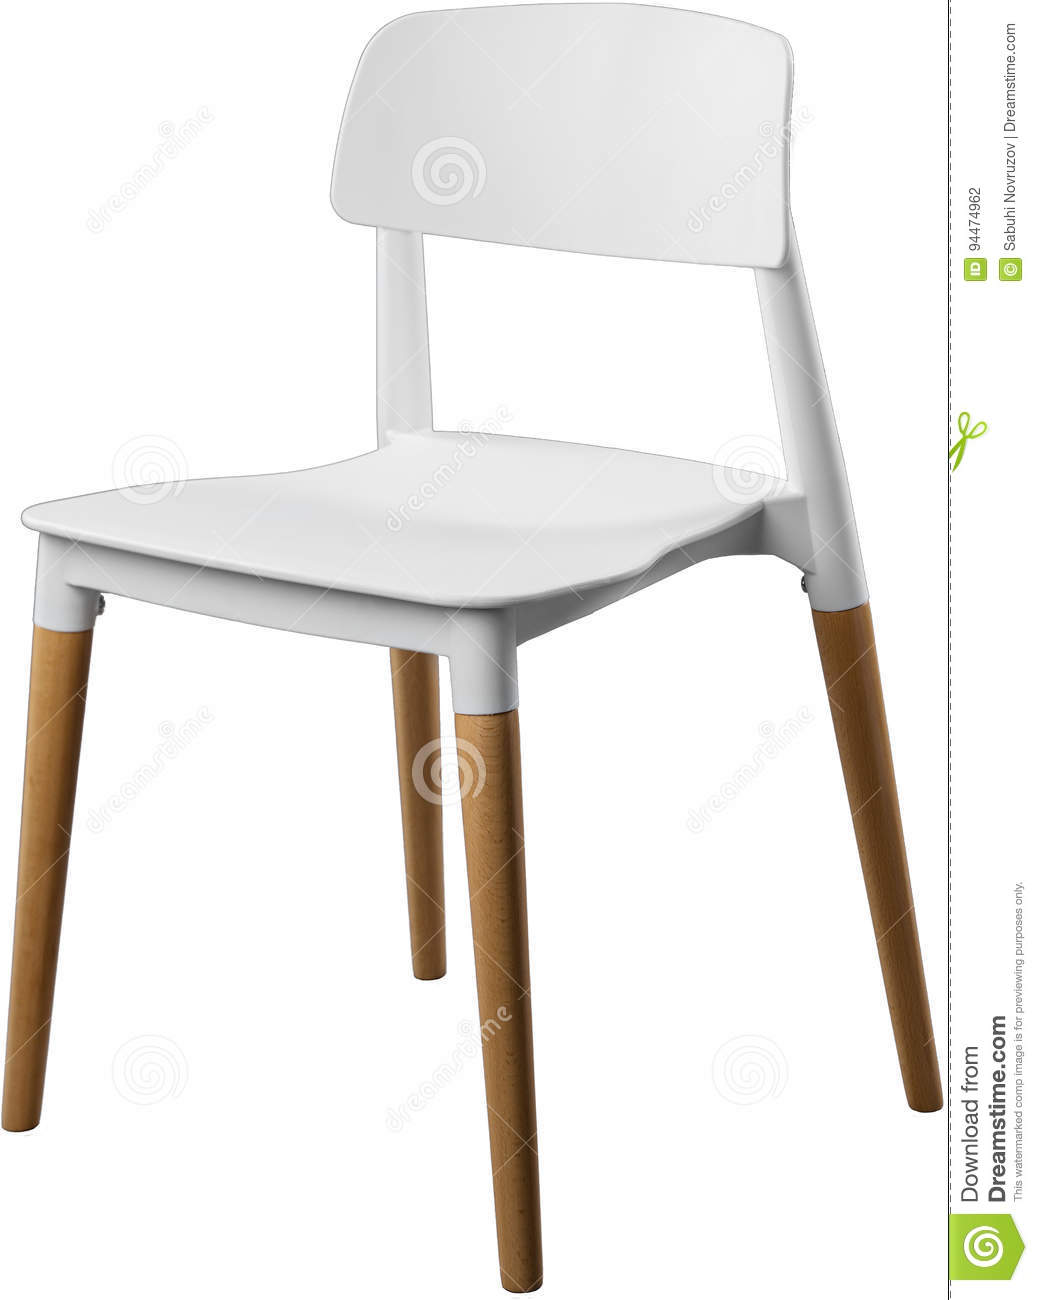 White color plastic chair modern designer chair on for Designer chair images